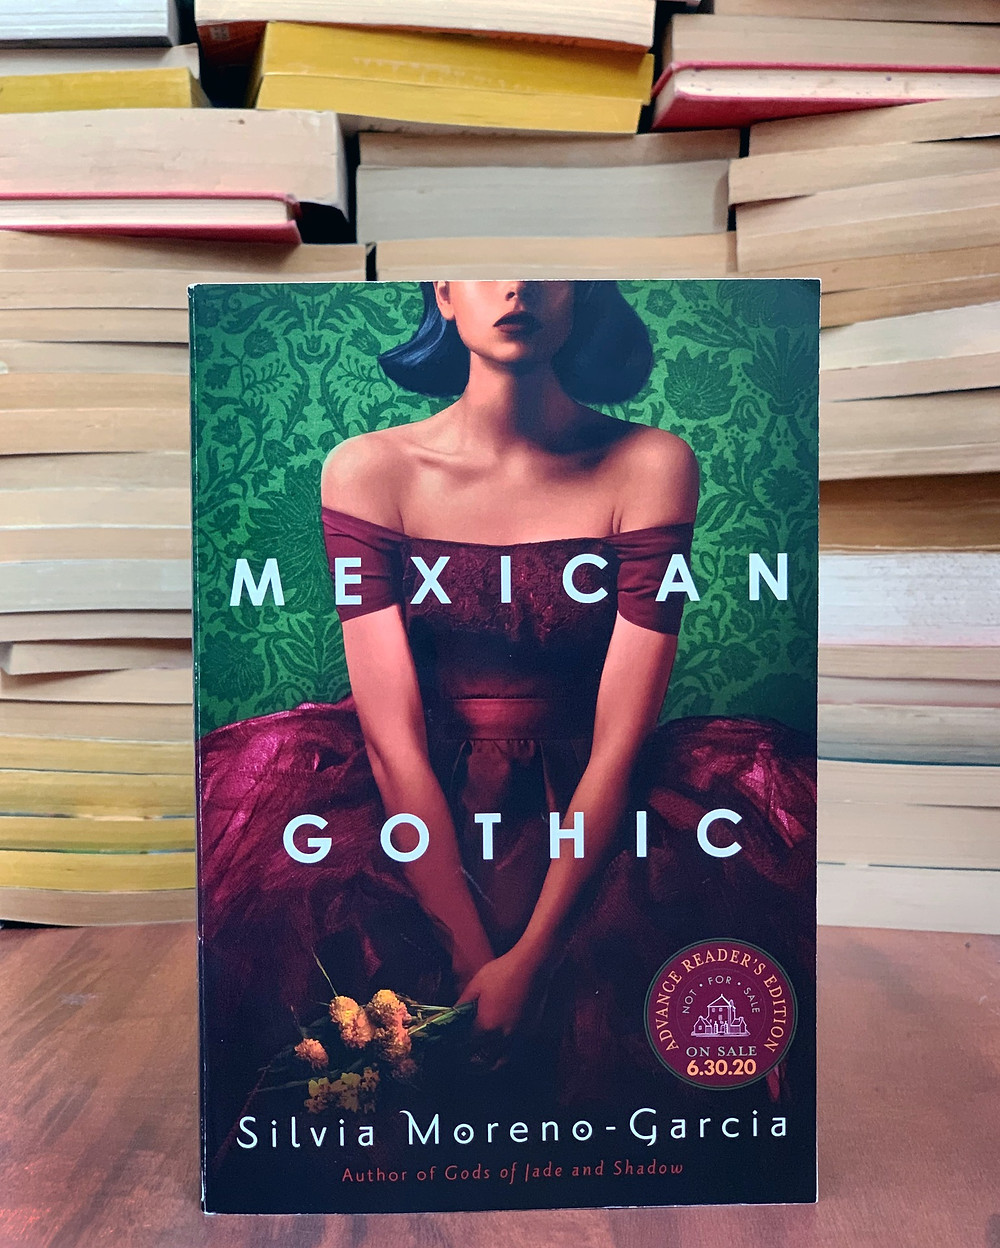 A copy of Mexican Gothic sits in front of a pile of yellowing pages of books